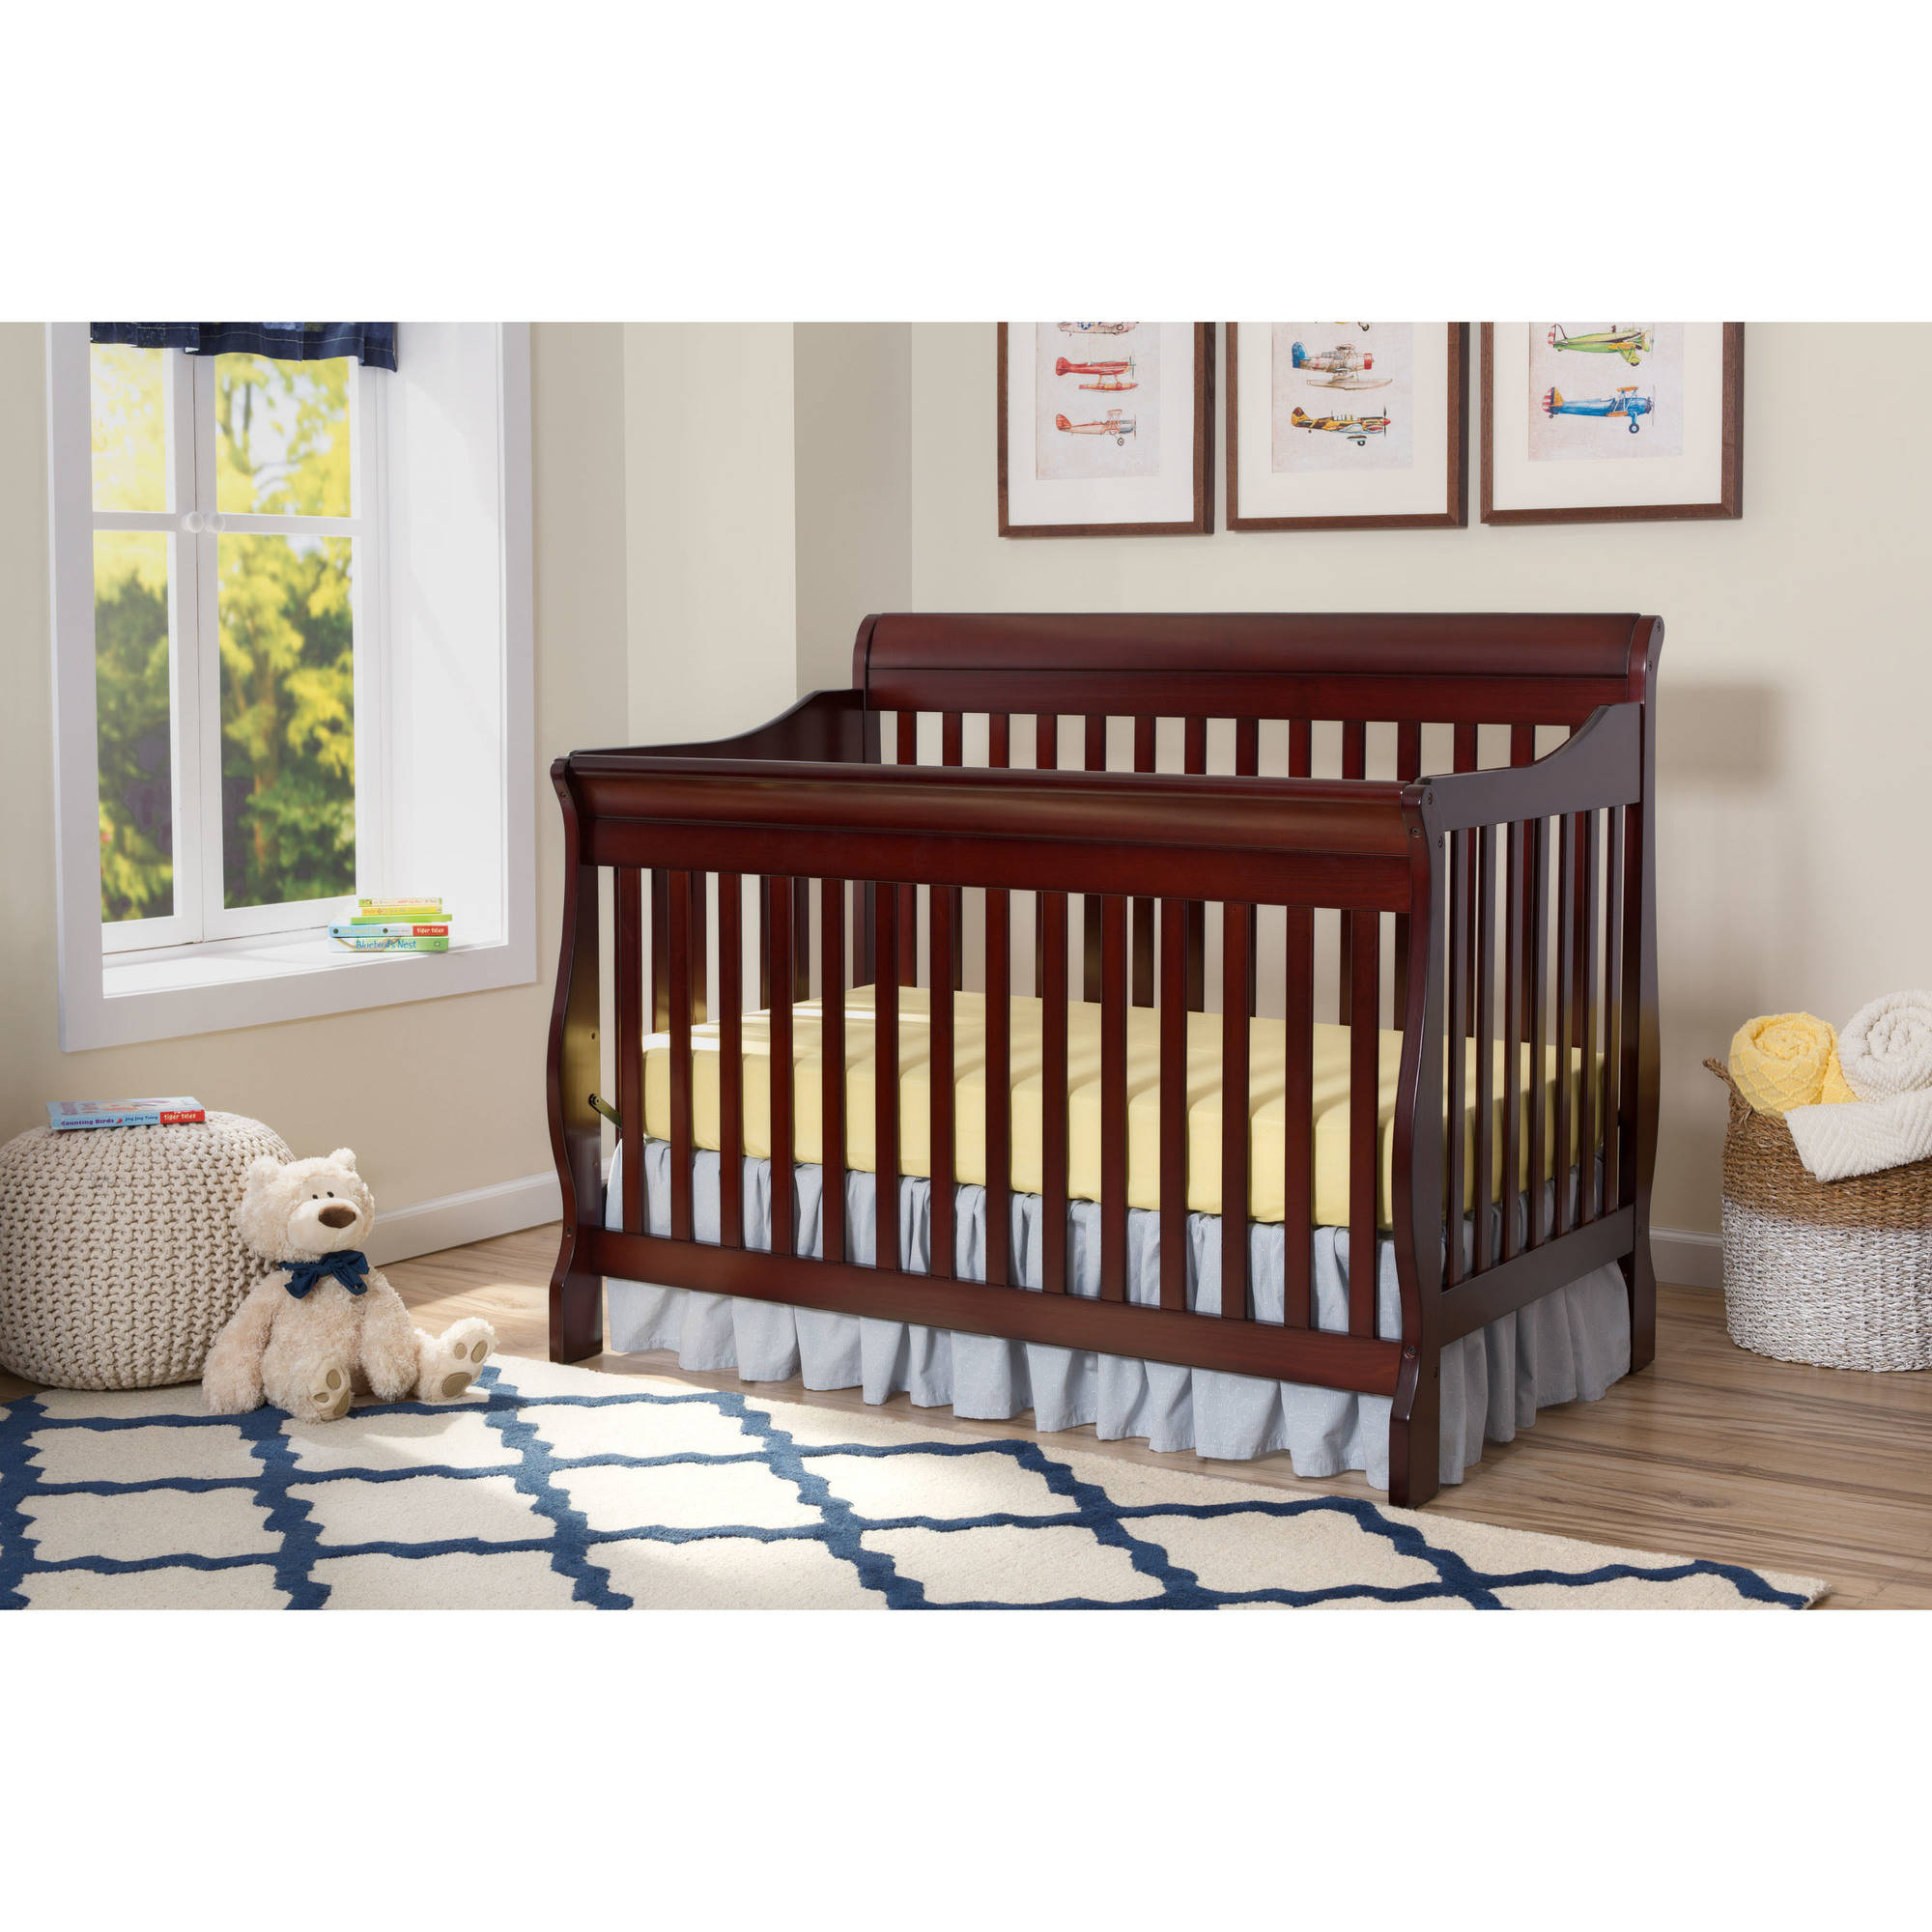 Delta - Canton 4-in-1 Convertible Crib, (Choose Your Finish)